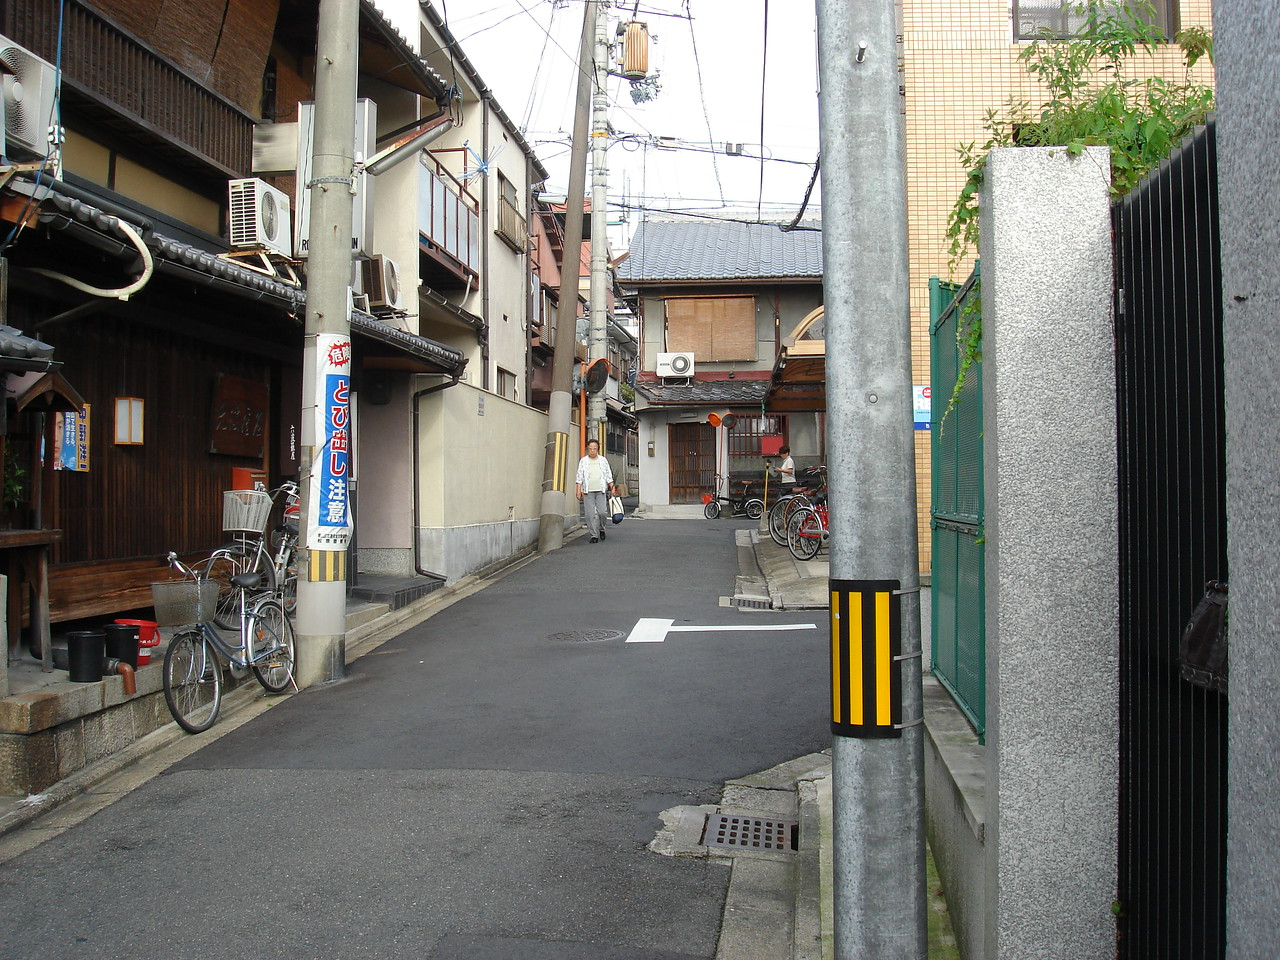 COULD BE ANYWHERE IN JAPAN